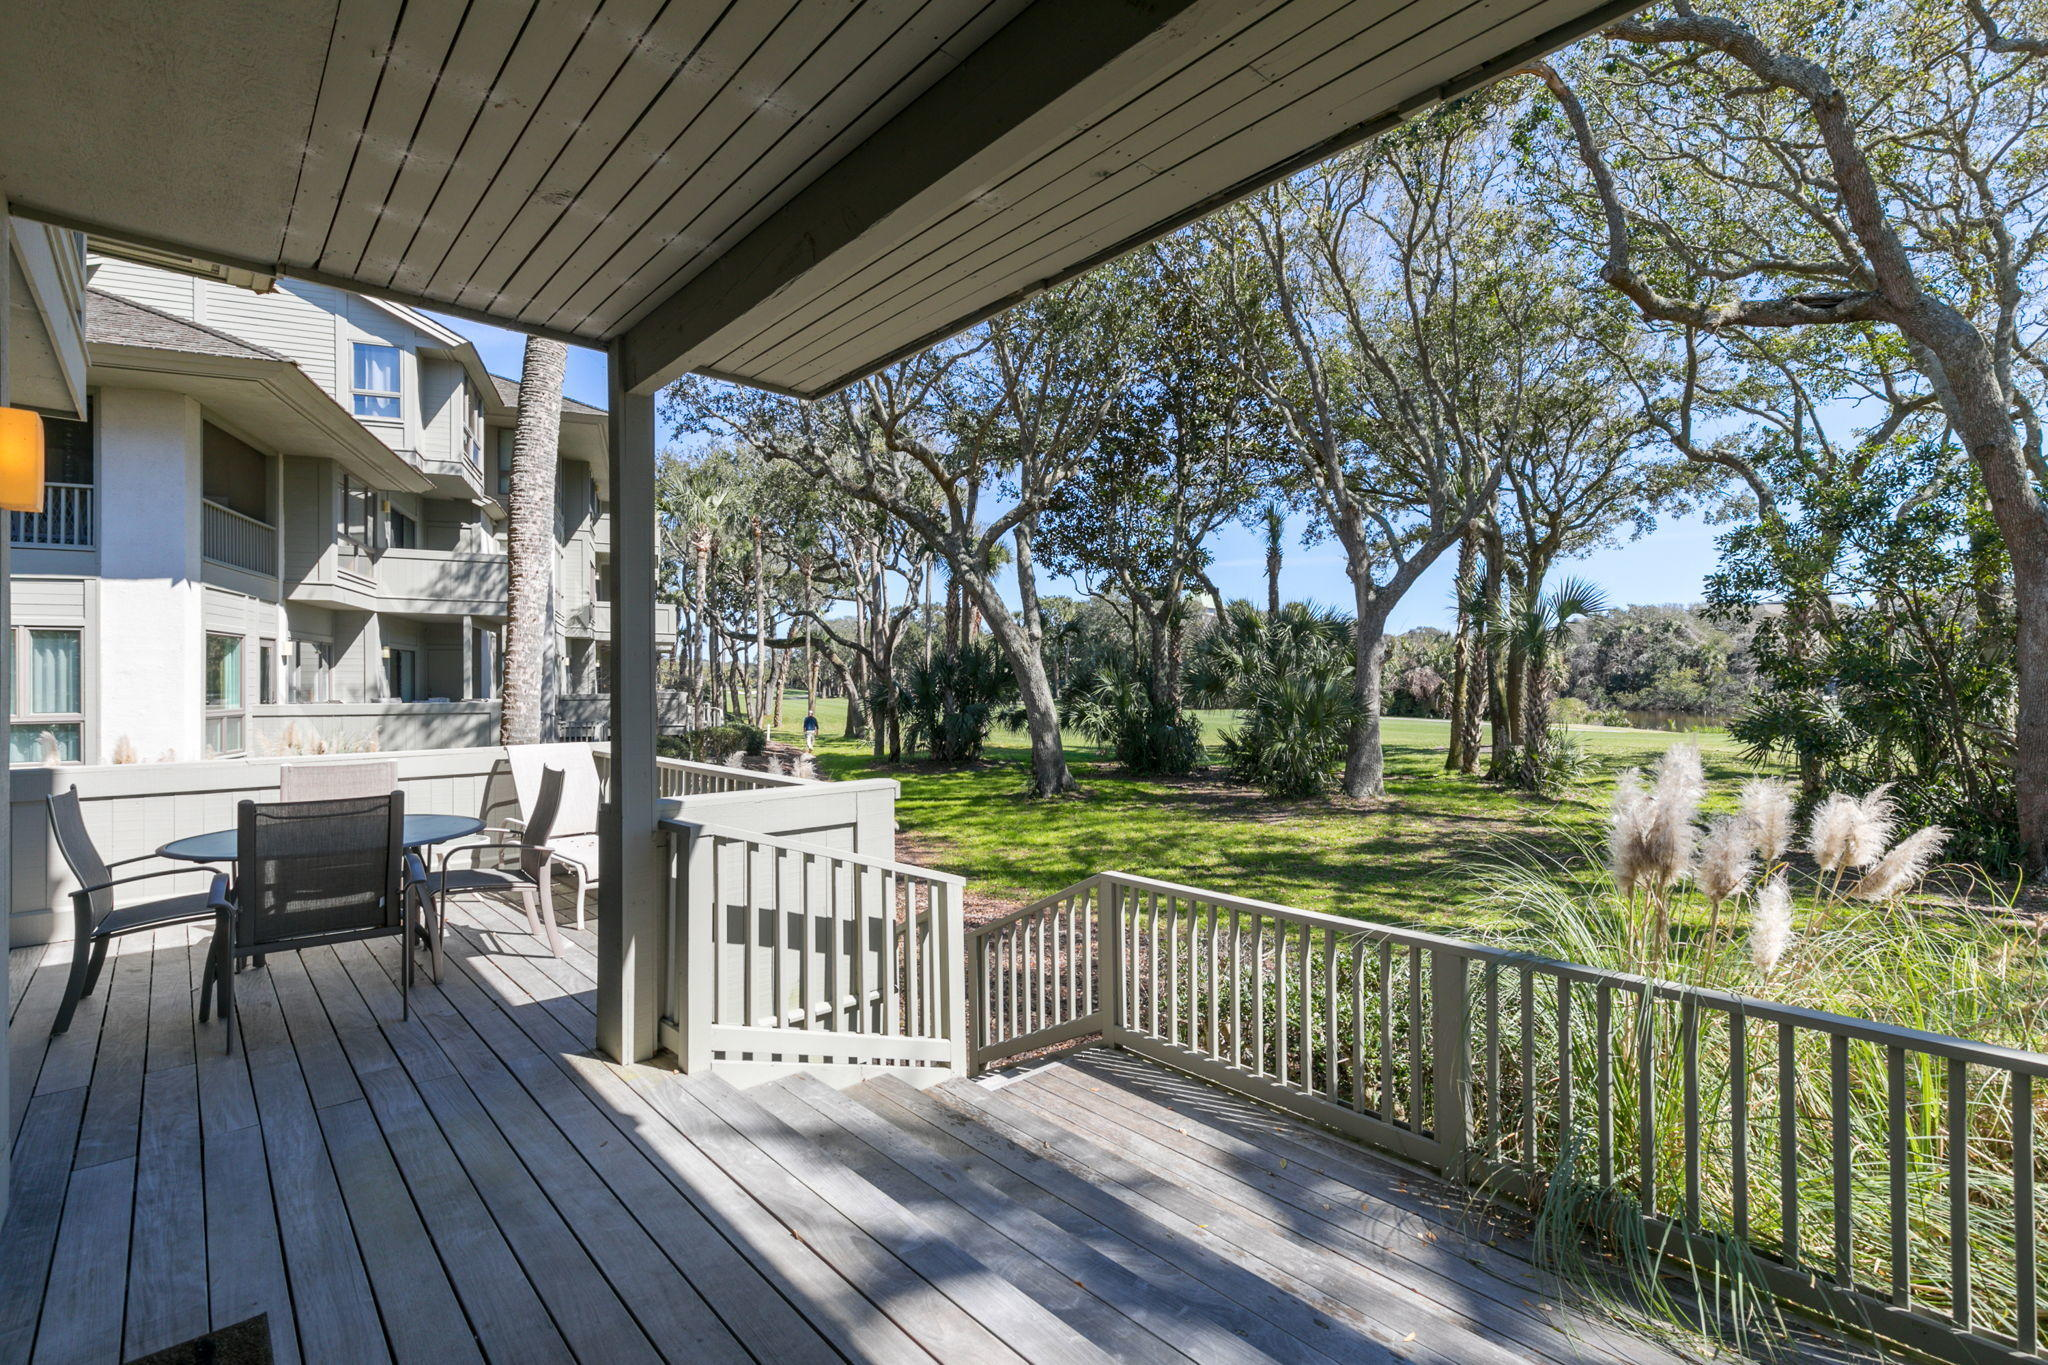 Kiawah Island Homes For Sale - 5001 Green Dolphin, Kiawah Island, SC - 56